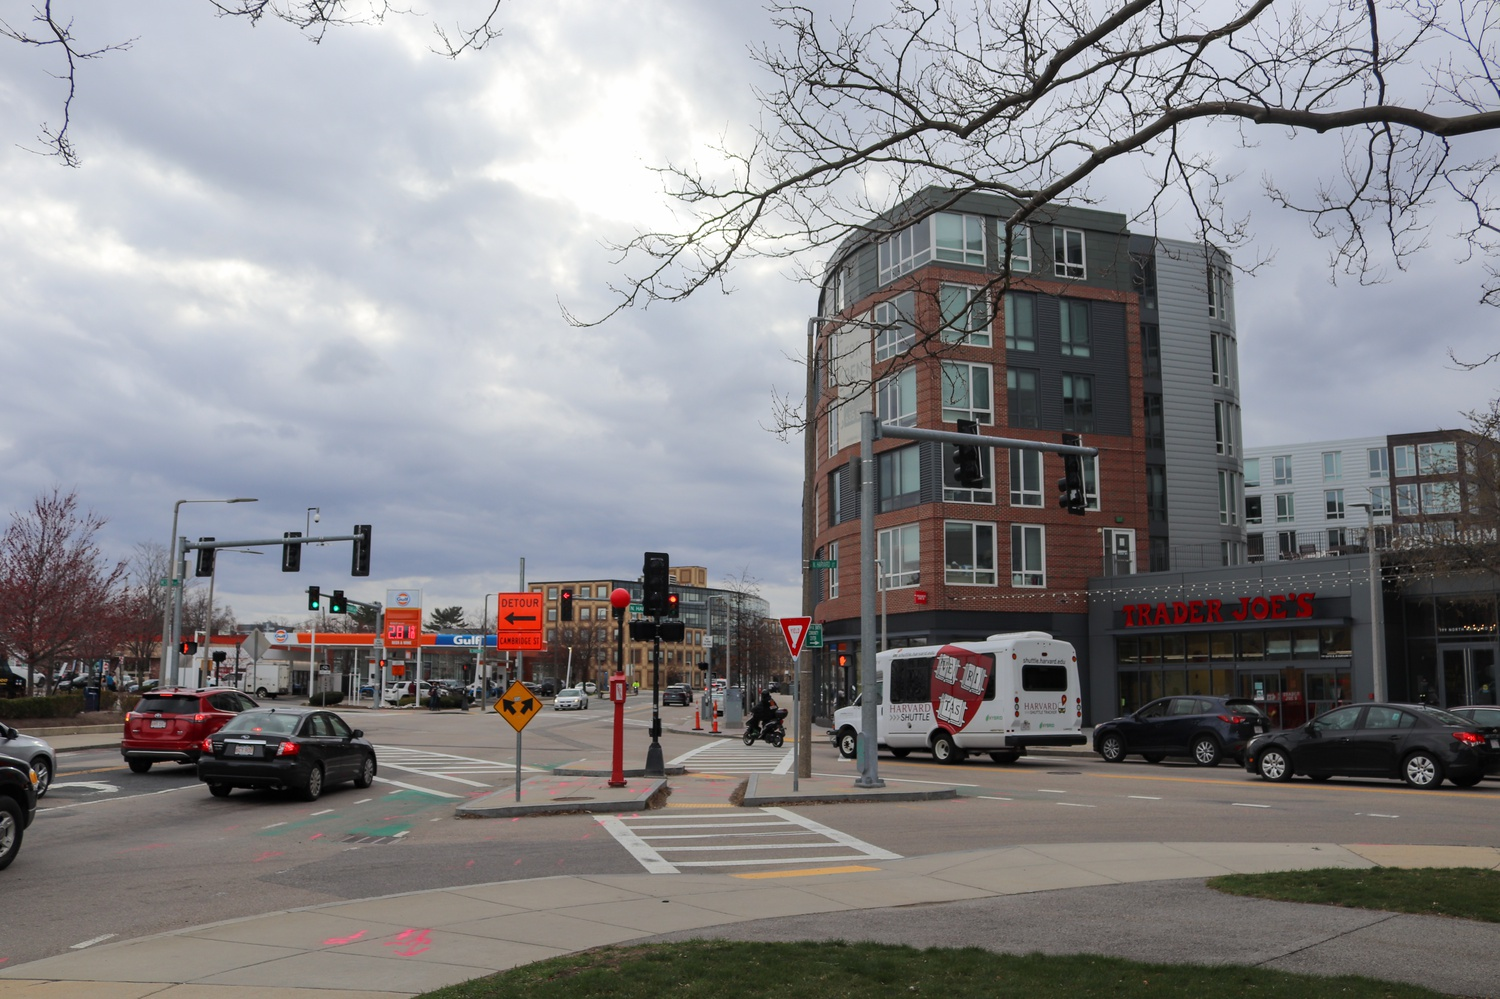 During a public meeting of the Harvard-Allston Task Force Tuesday, some residents questioned the developers of 180 Western Ave. on how they would mitigate complaints that arose during the contruction of 2014 Continuum development — seen above, right — in Barry's Corner, which was led by the same firm.